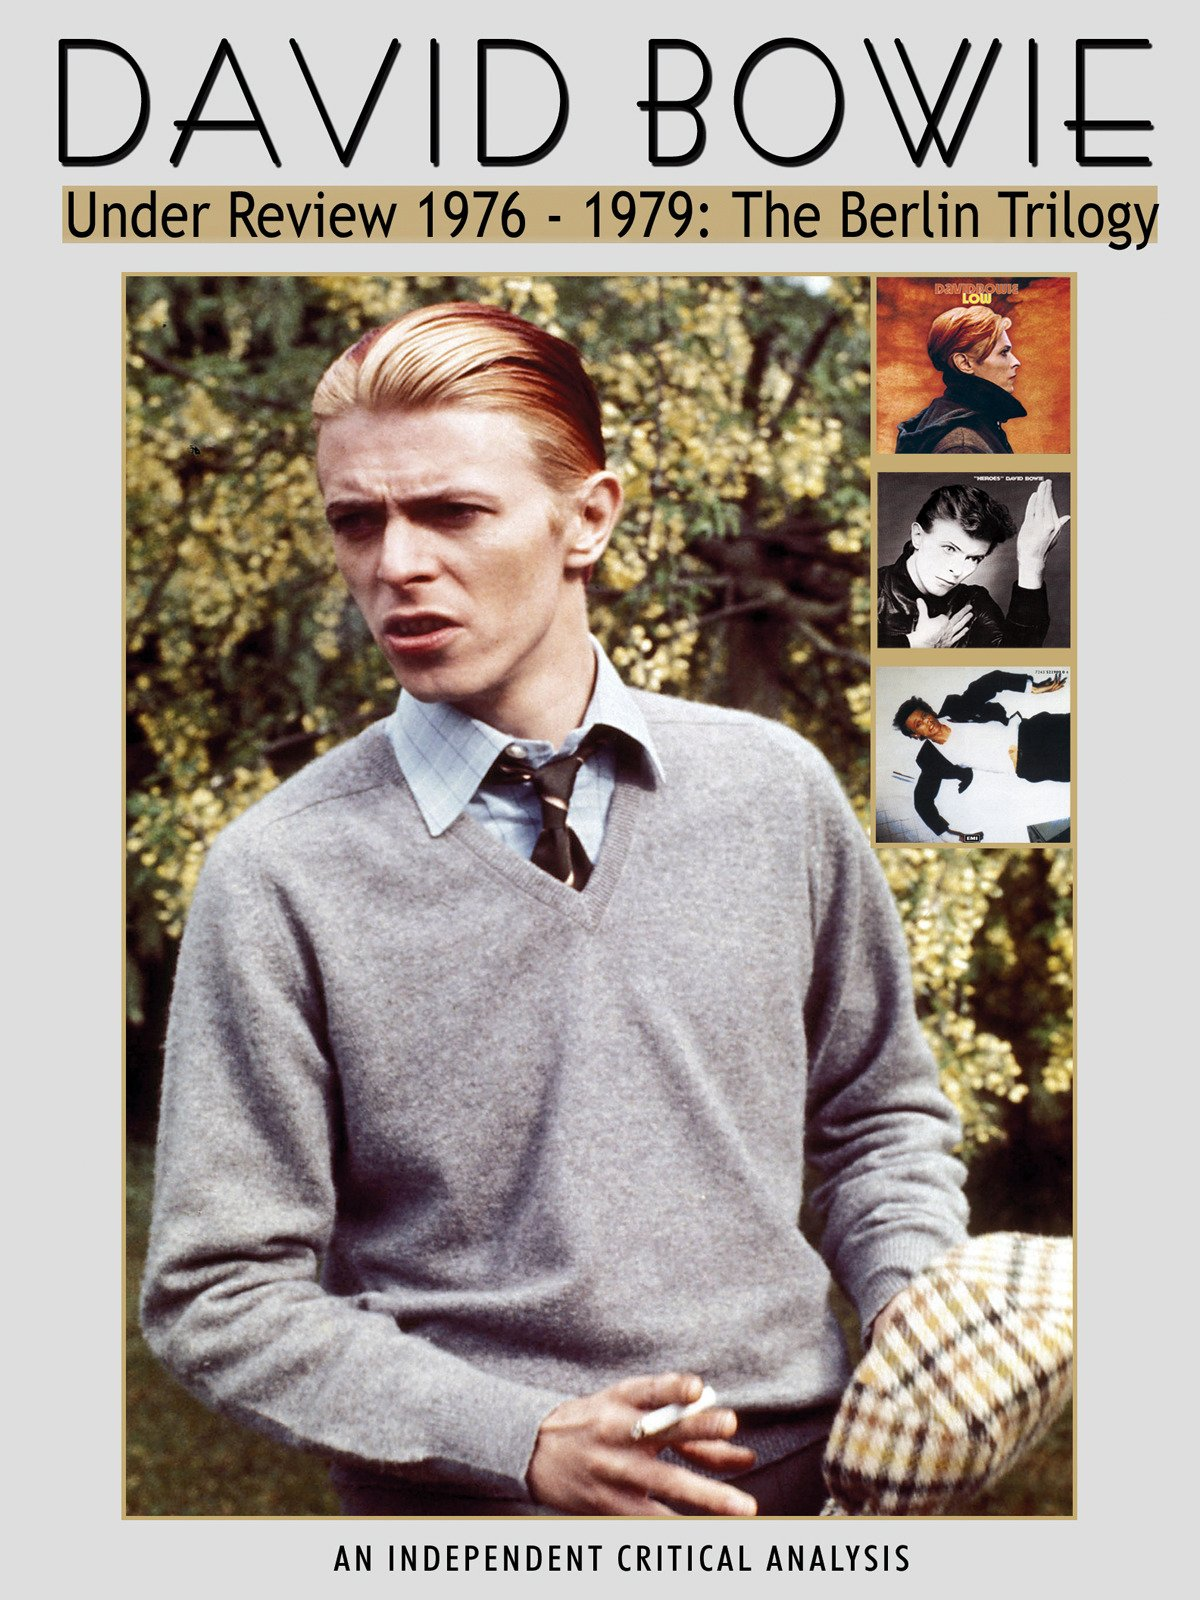 David Bowie - Under Review 1976-79 The Berlin Trilogy